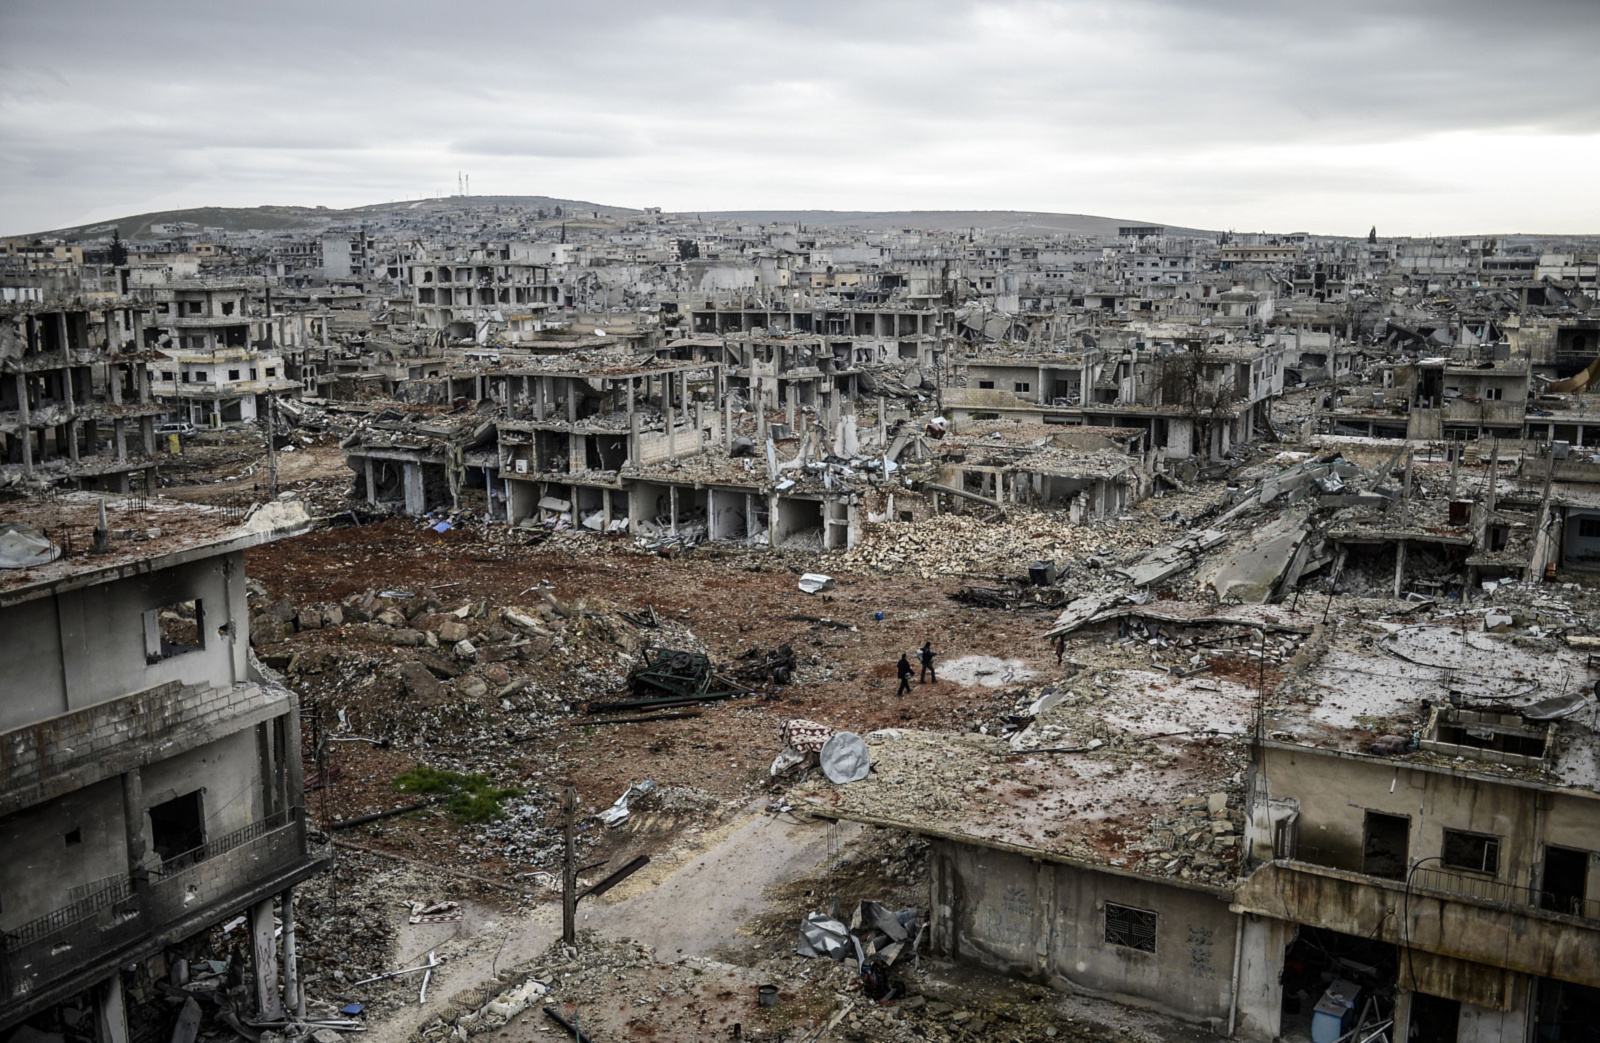 A photo taken on January 30, 2015 shows the eastern part of the destroyed Syrian town of Kobane, also known as Ain al-Arab. Kurdish forces recaptured the town on the Turkish frontier on January 26, in a symbolic blow to the jihadists who have seized large swathes of territory in their onslaught across Syria and Iraq.     AFP PHOTO/BULENT KILICBULENT KILIC/AFP/Getty Images           NYTCREDIT: Bulent Kilic/Agence France-Presse -- Getty Images